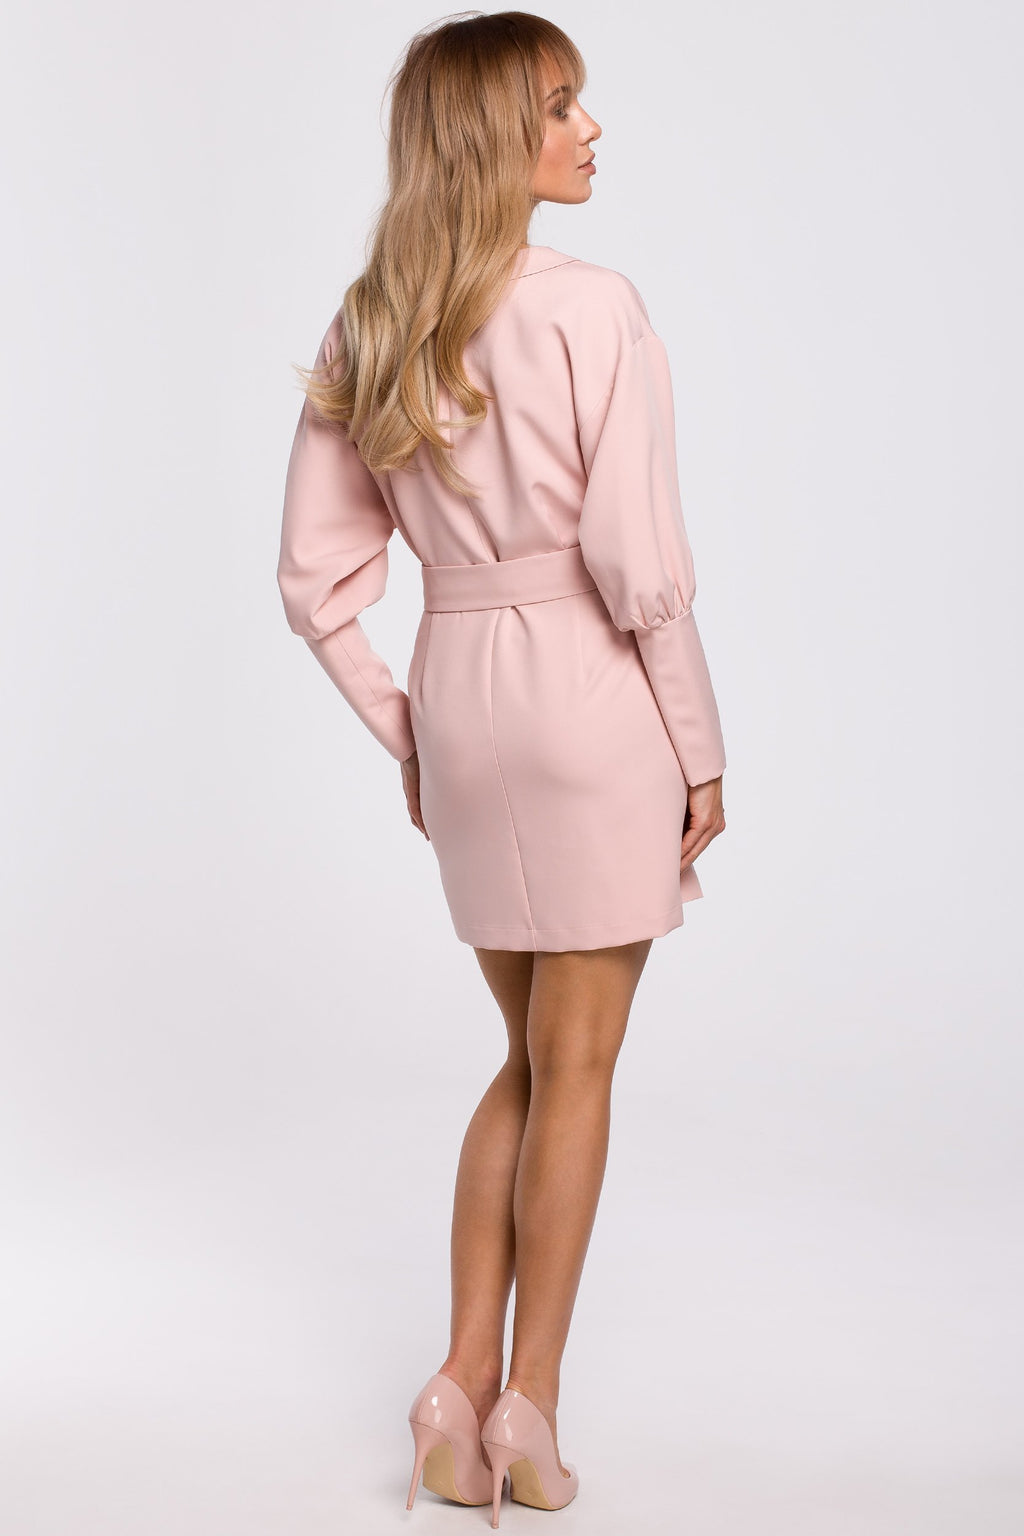 Powder Pink Mini Blazer Dress With Kimono Sleeves - So Chic Boutique